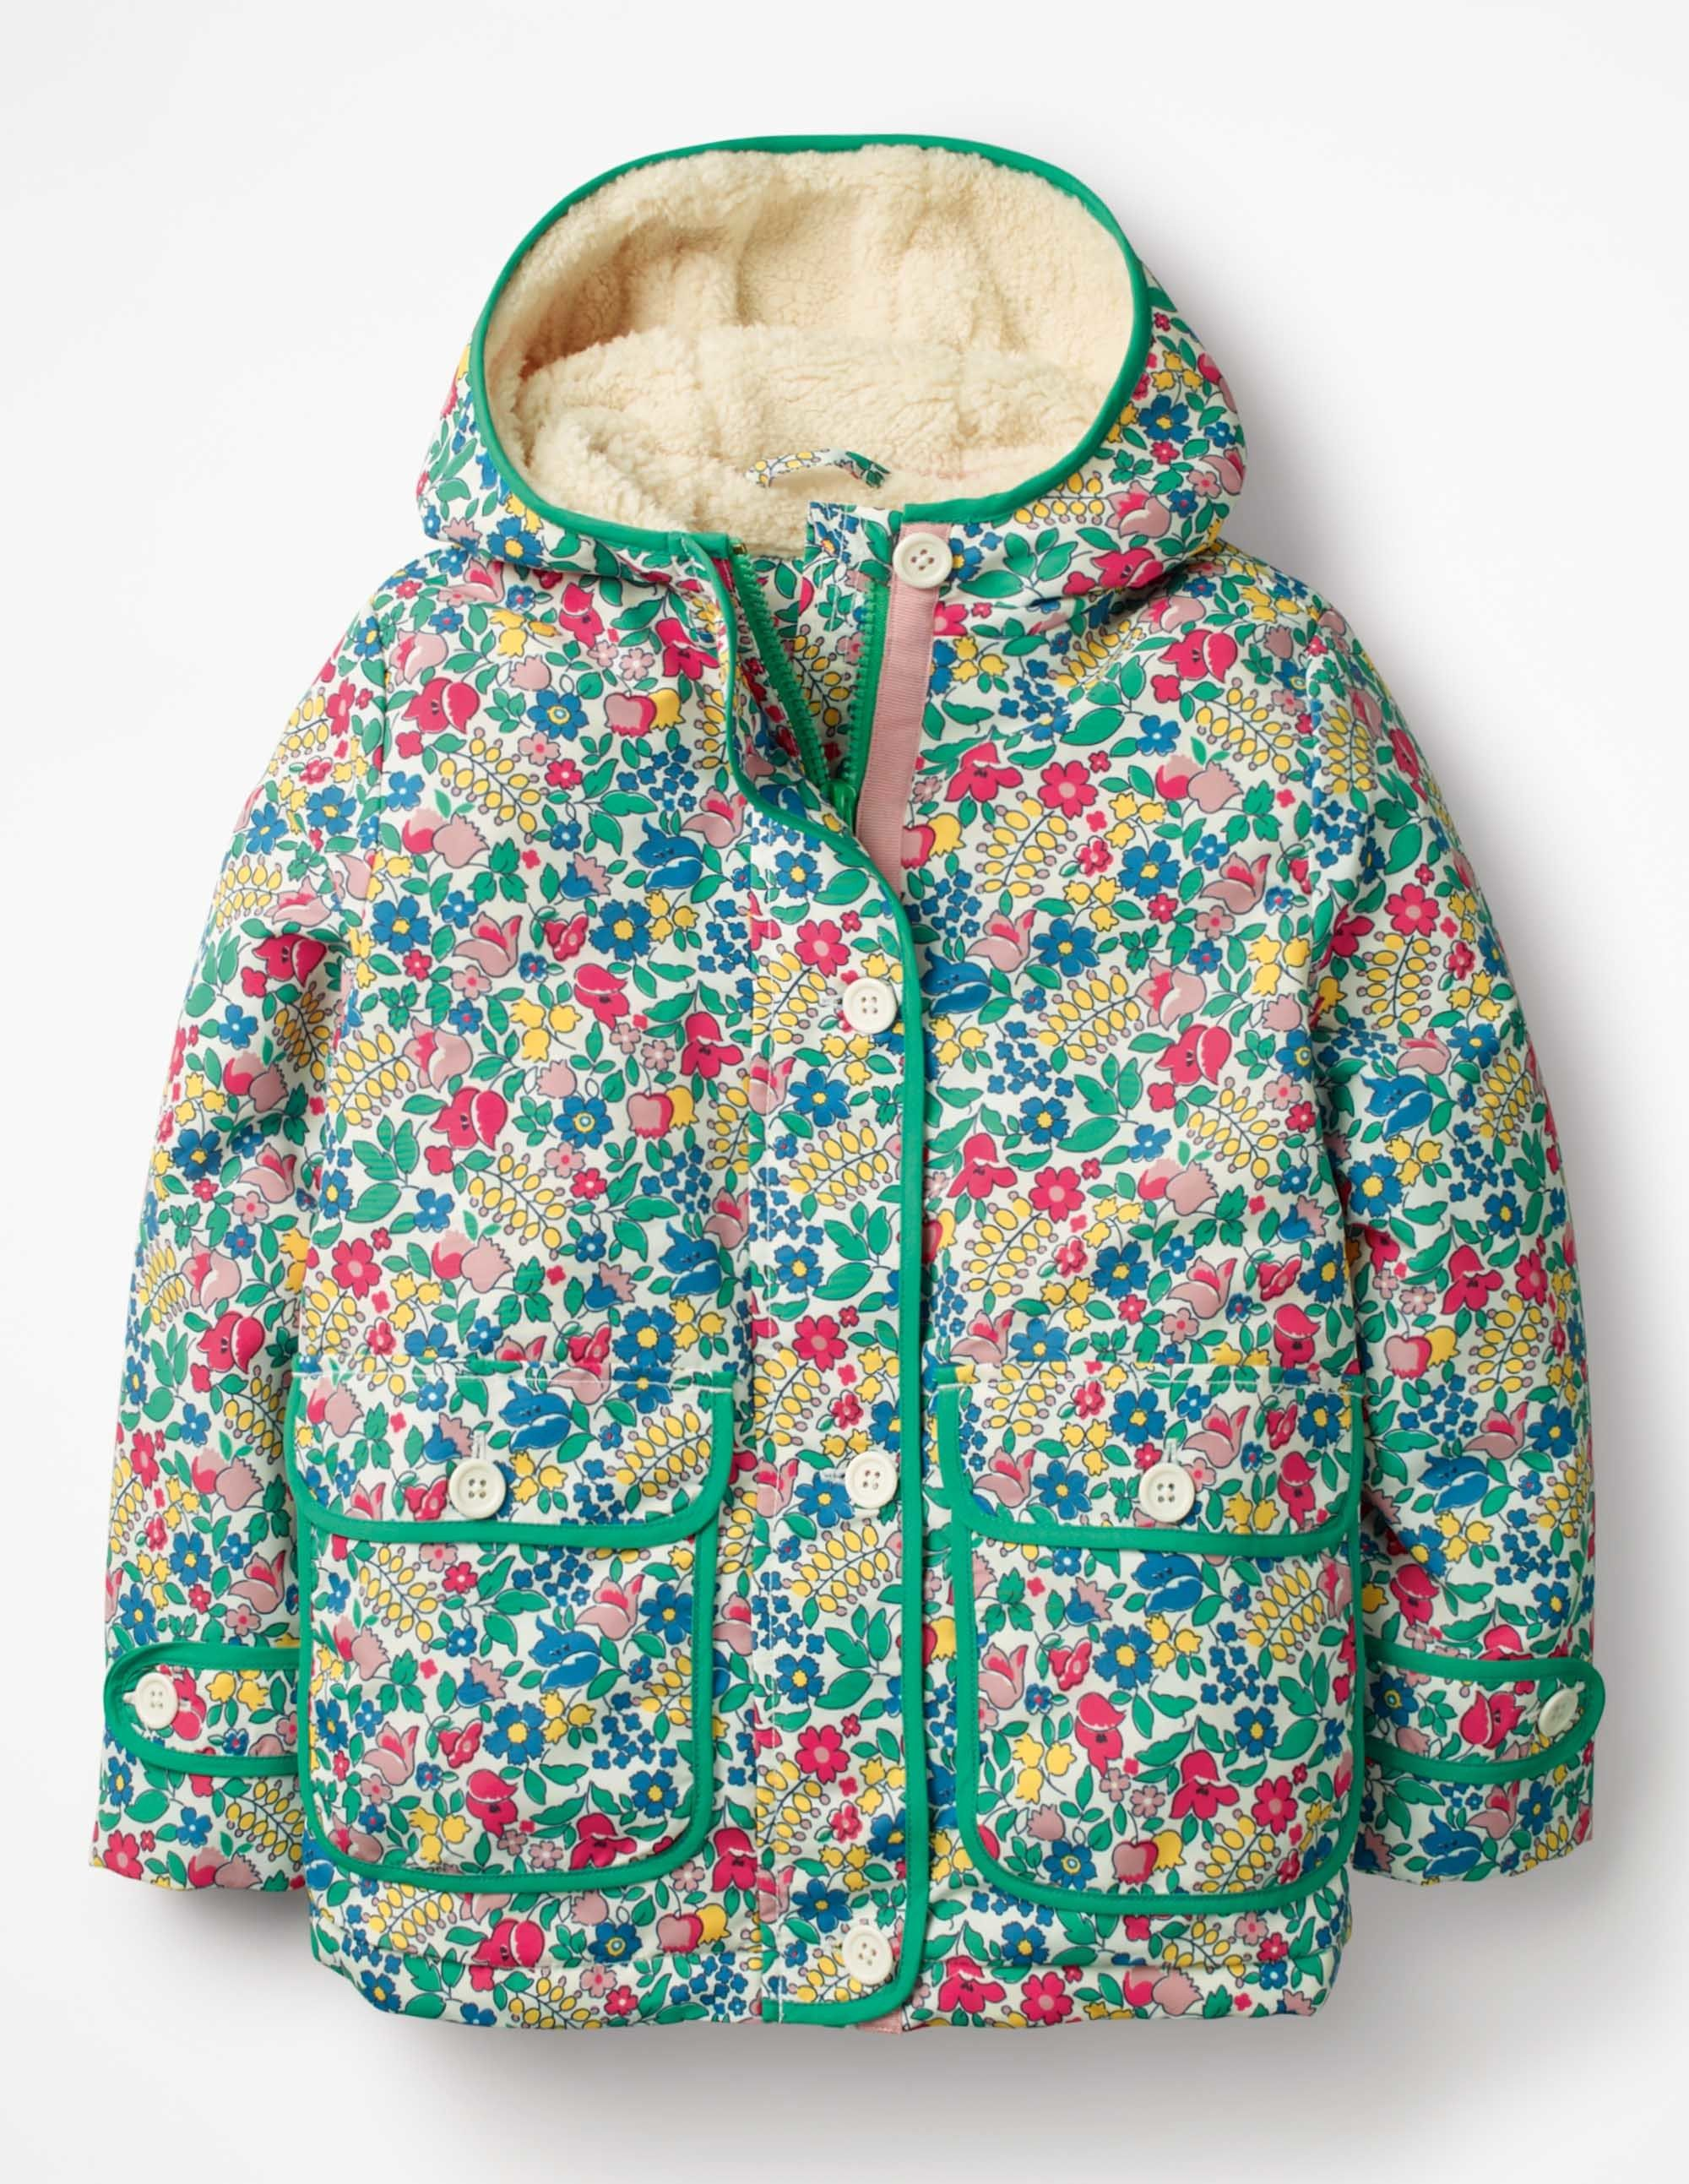 Sherpa Lined Anorak G0628 Coats at